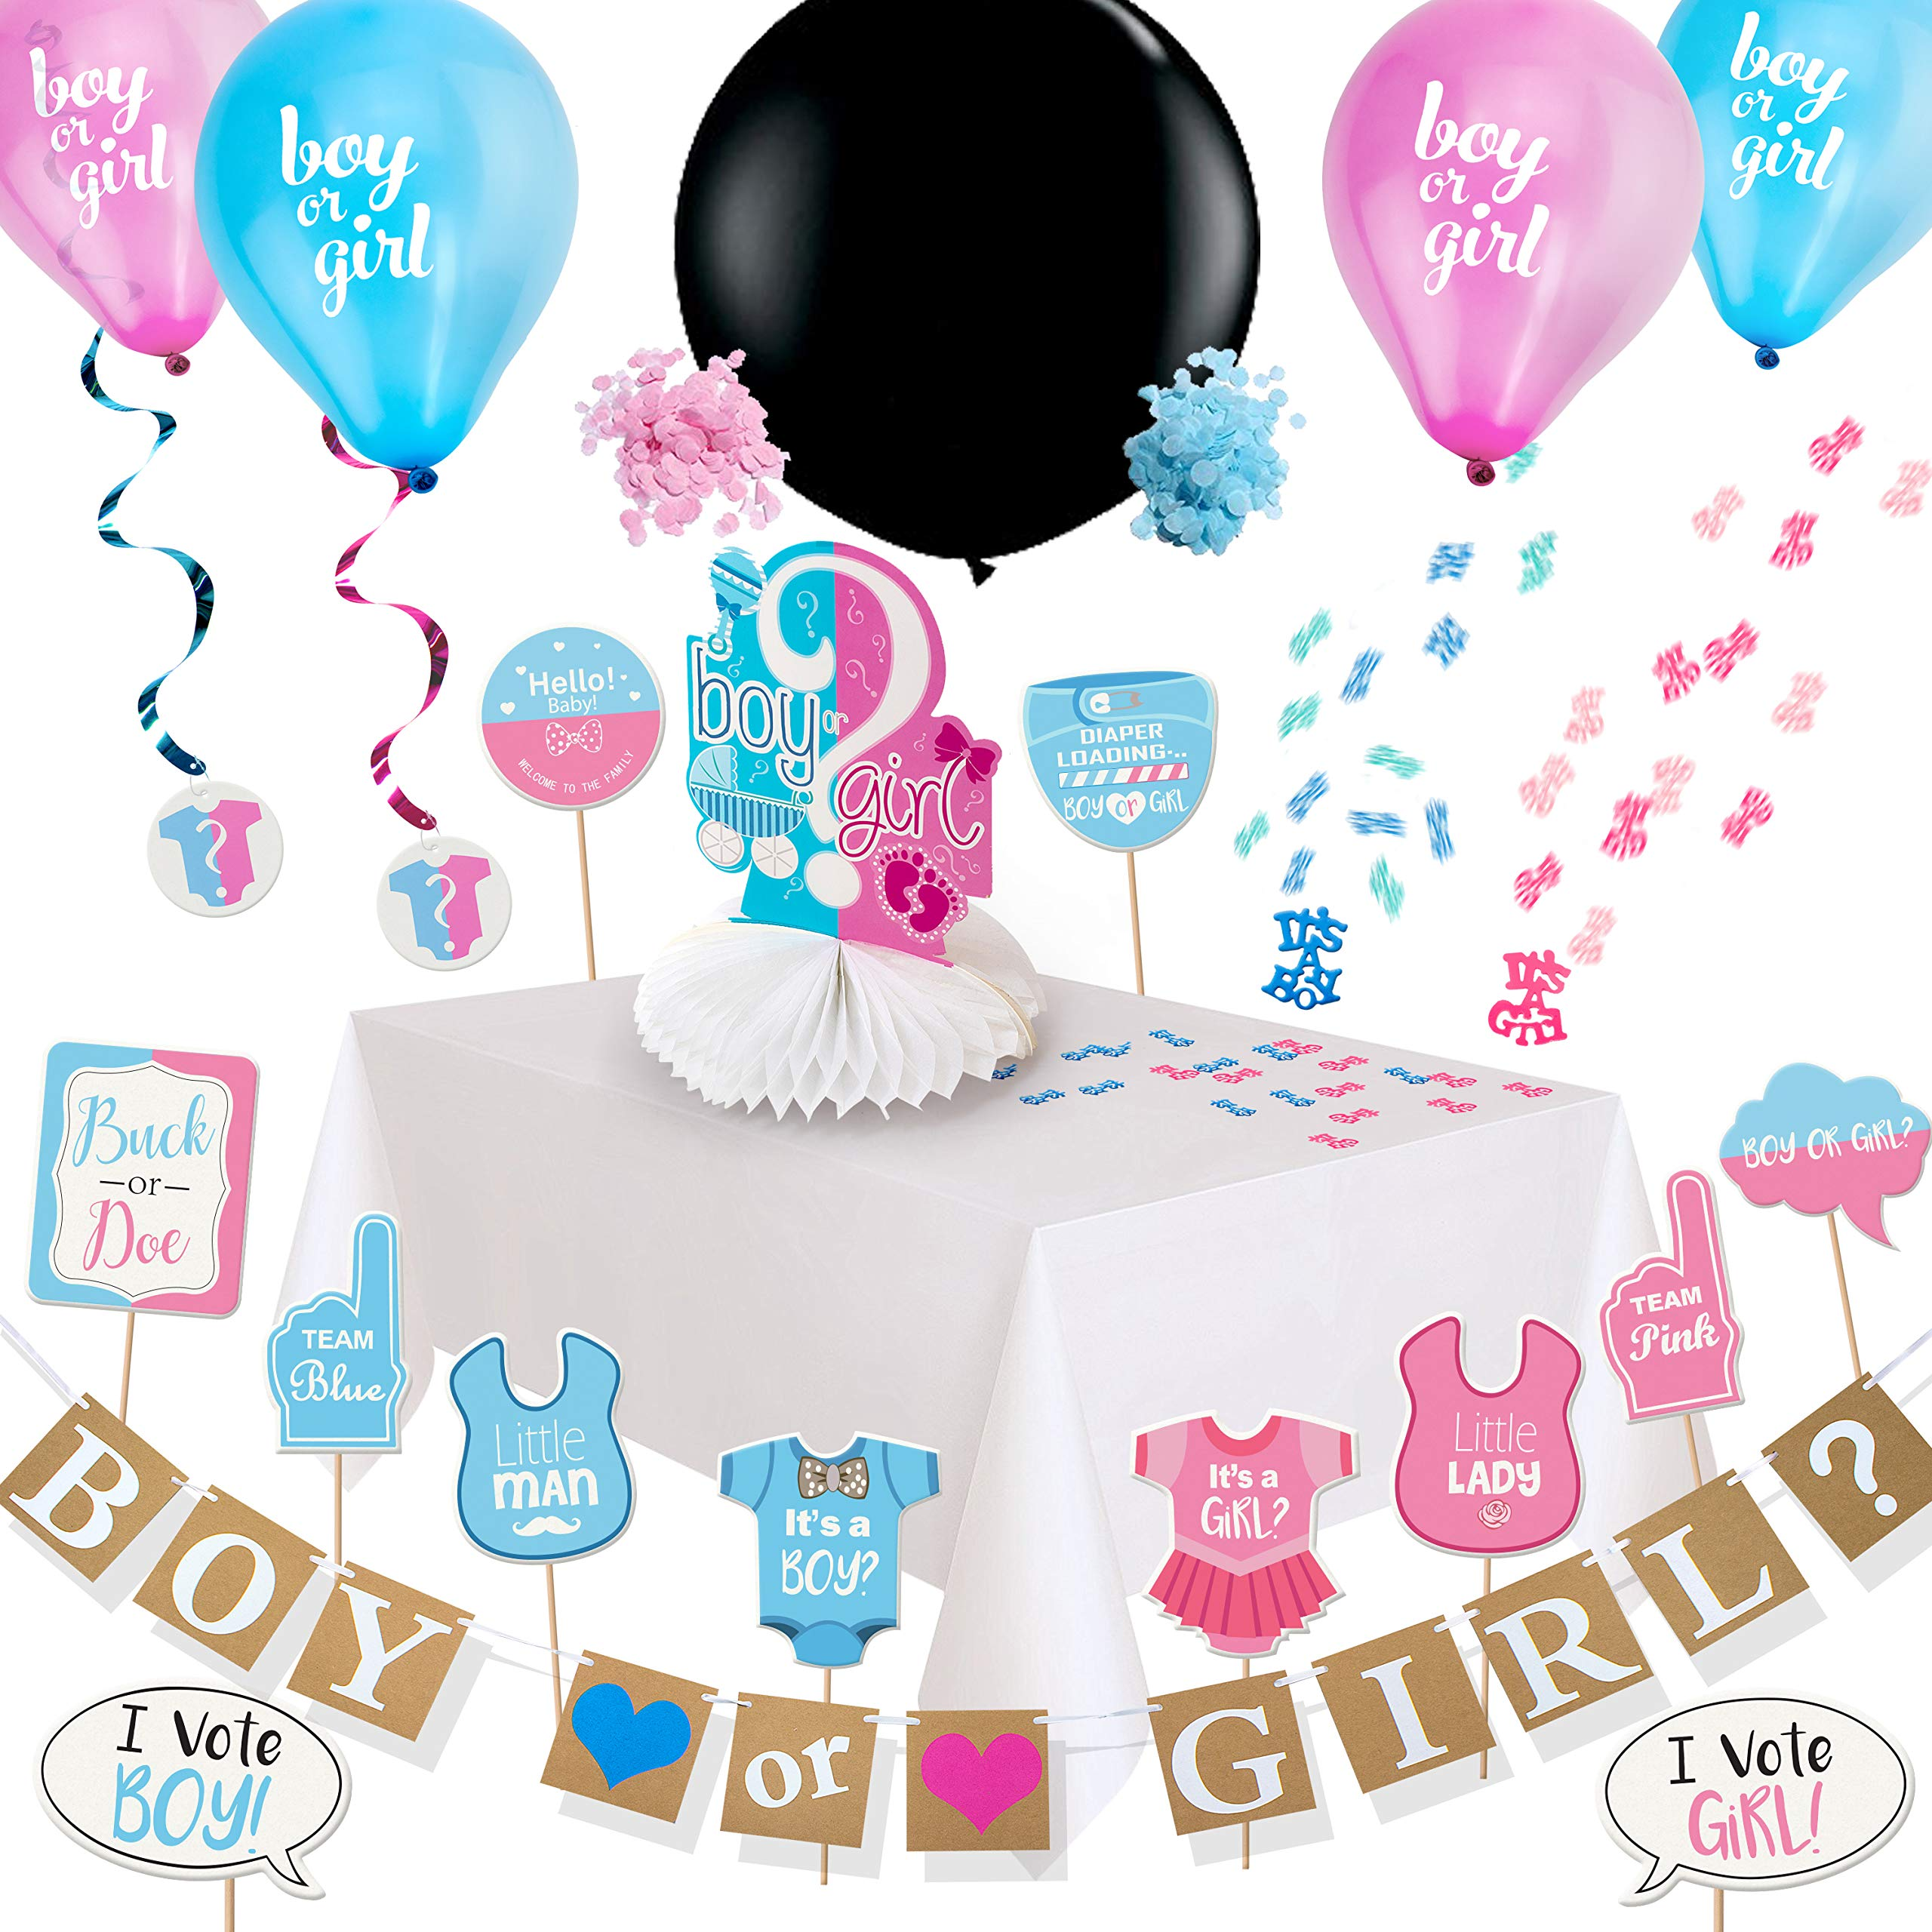 ARTIT Gender Reveal Party Supplies Baby Shower Pregnancy Announcement Decorations Kit Boy or Girl Favors Pack - Banner Centerpiece 36\' Black Balloon Pink & Blue Confetti Swirls Tablecloth Photo Props